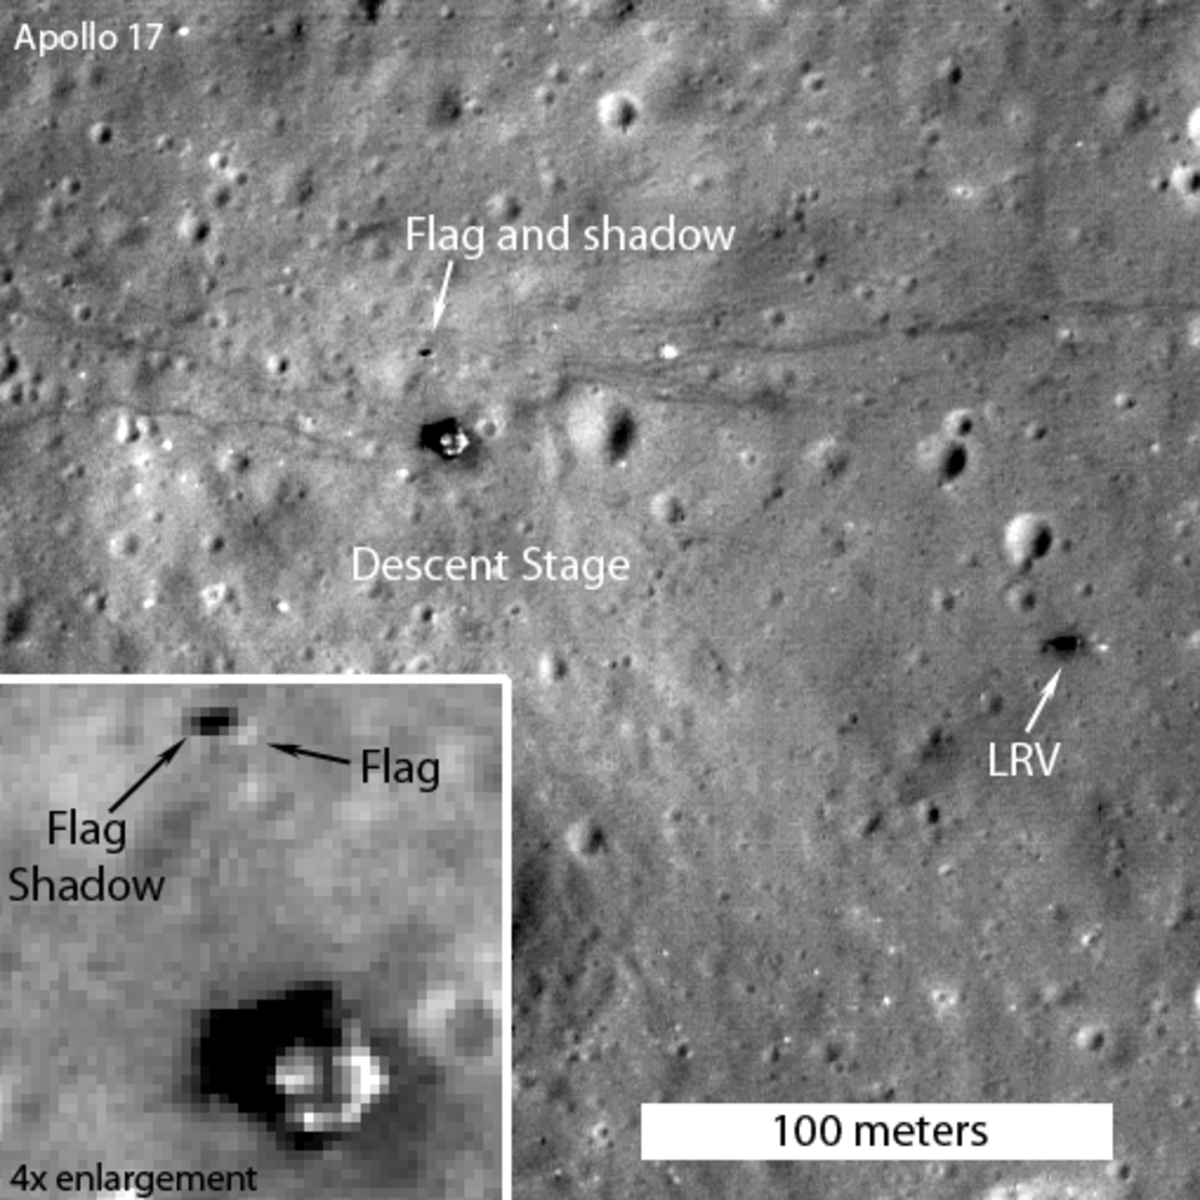 September 2011? Apollo 17 Lander with flag shadow visible.